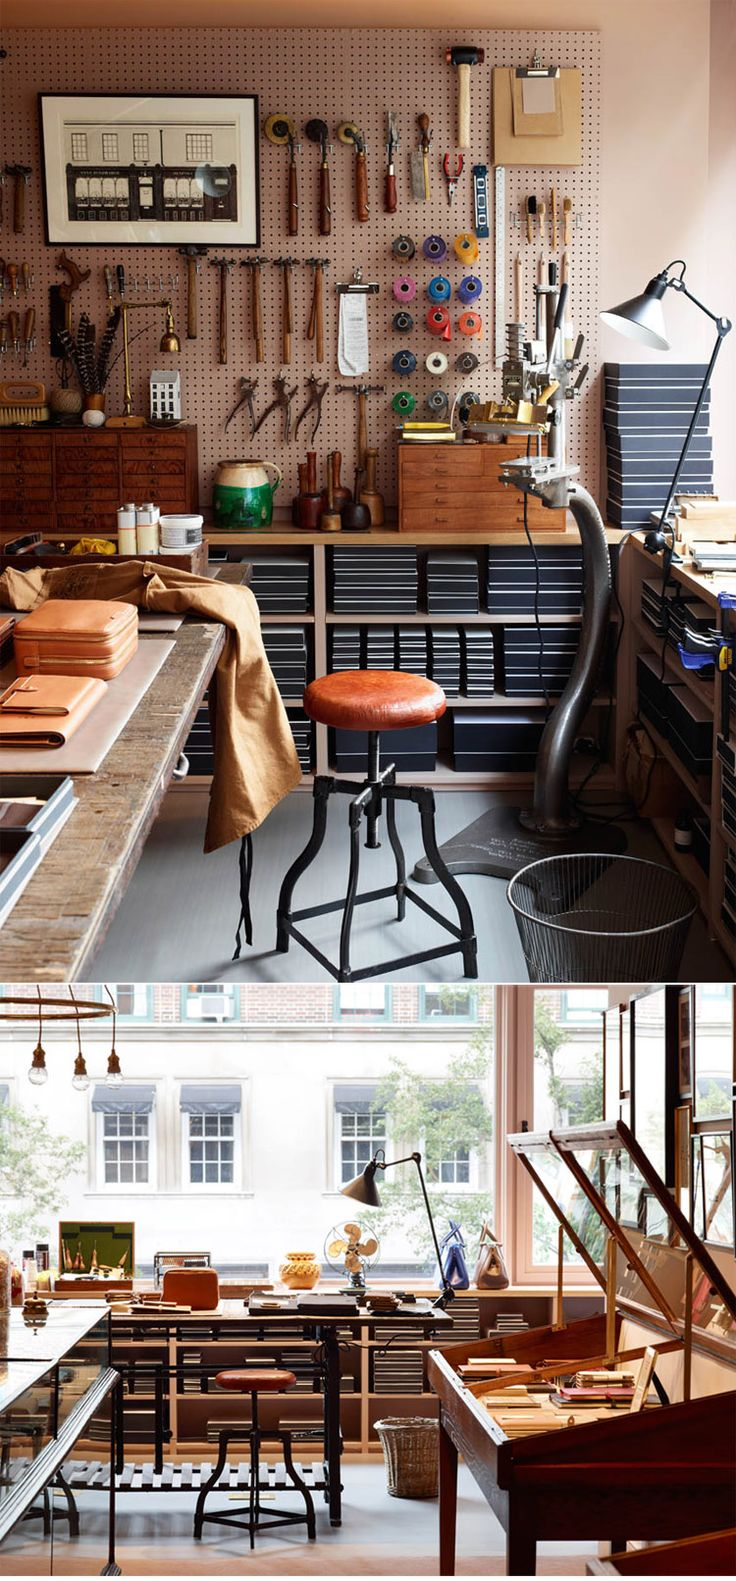 Best 25+ Workshop design ideas on Pinterest | Workshop, Garage ...